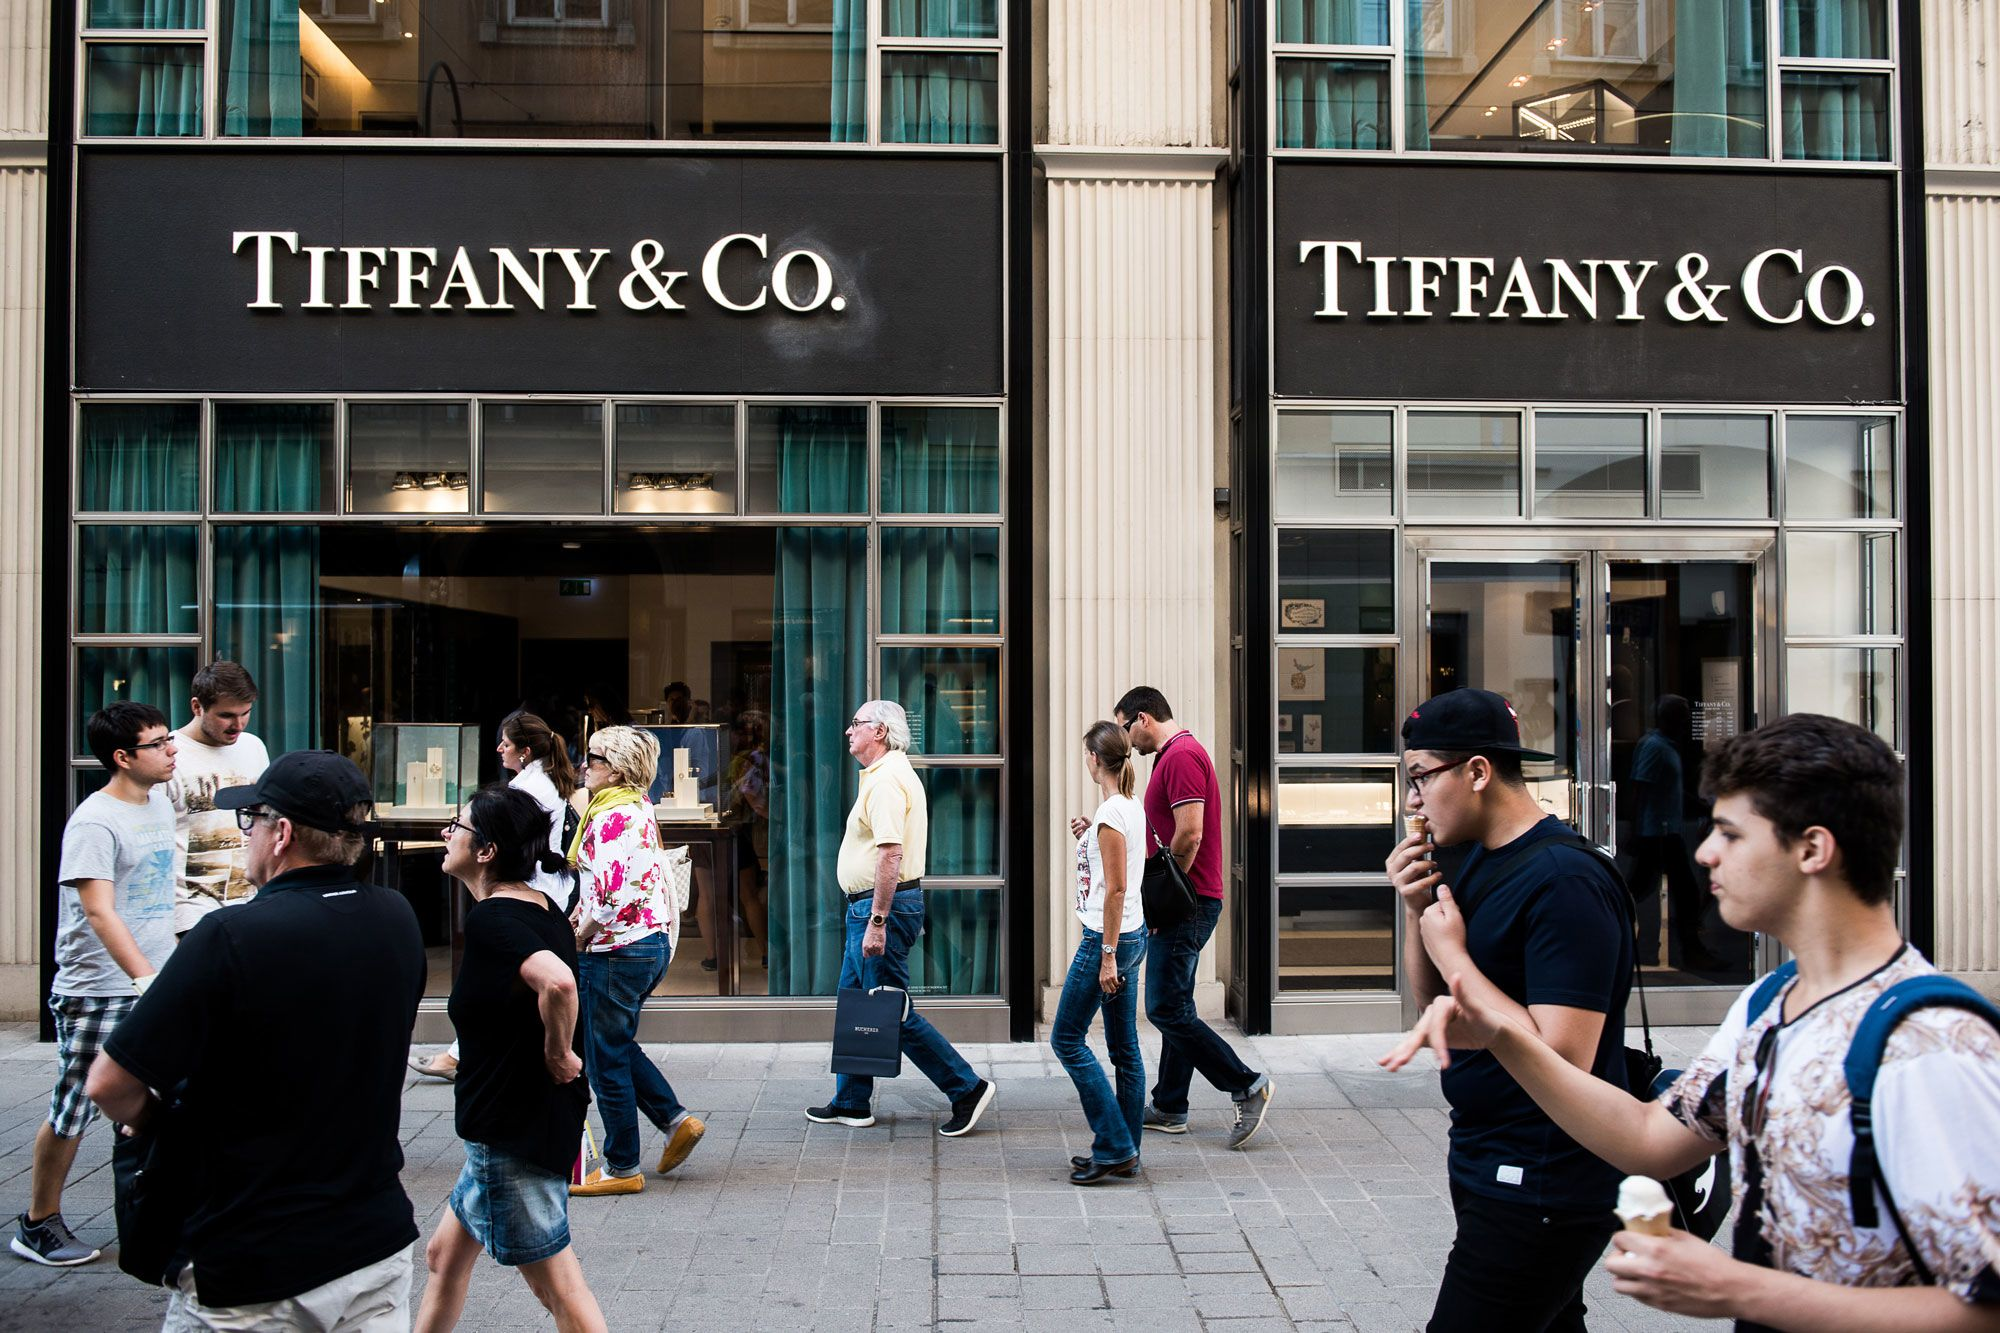 Stocks making the biggest moves midday: Tiffany, Fitbit, Spotify, AT&T, Virgin Galactic & more